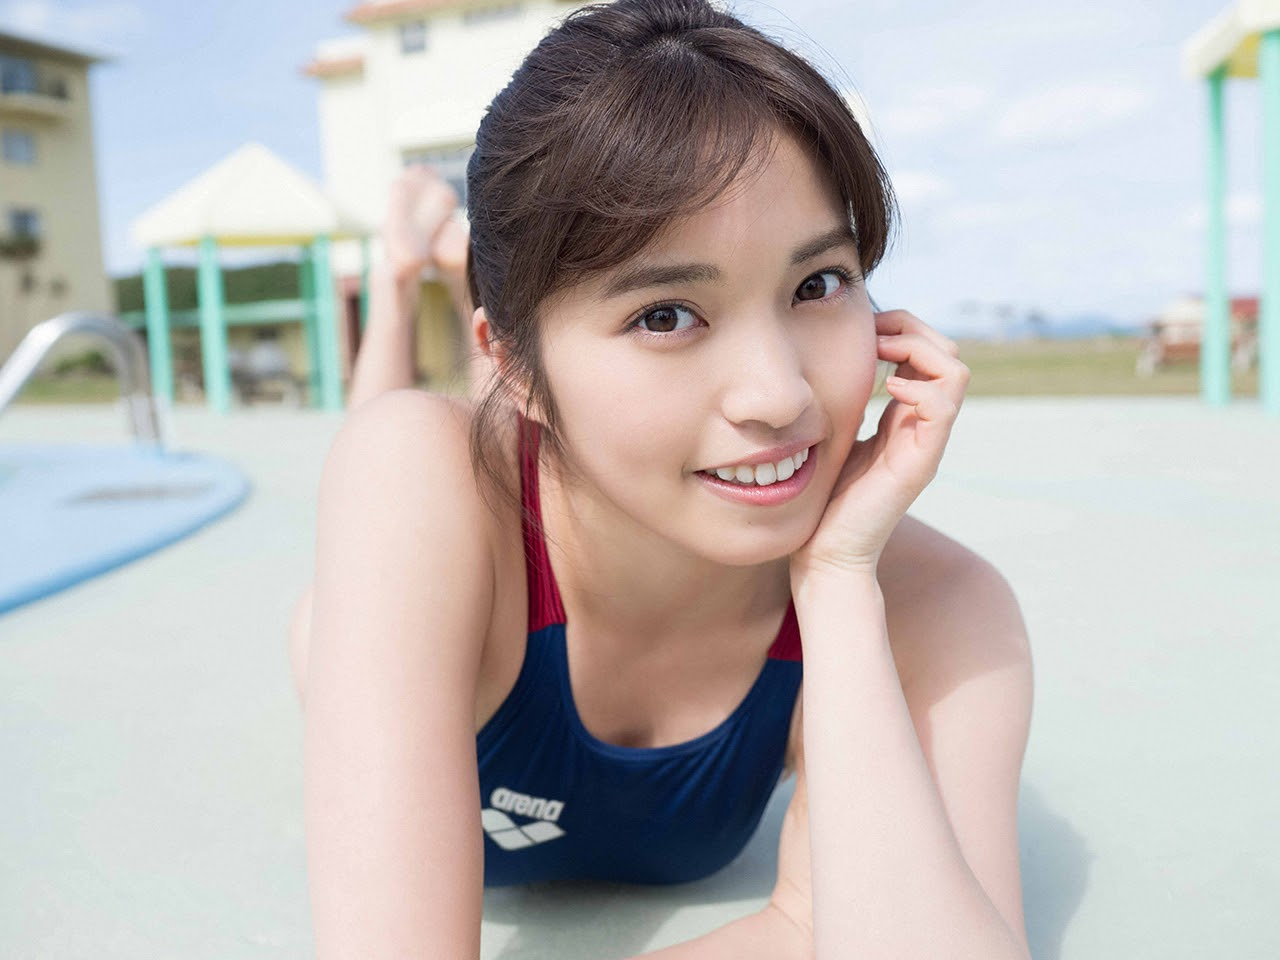 Gravure world treasure BODY Dynamic Miyubai pops up in winter in Okinawa090